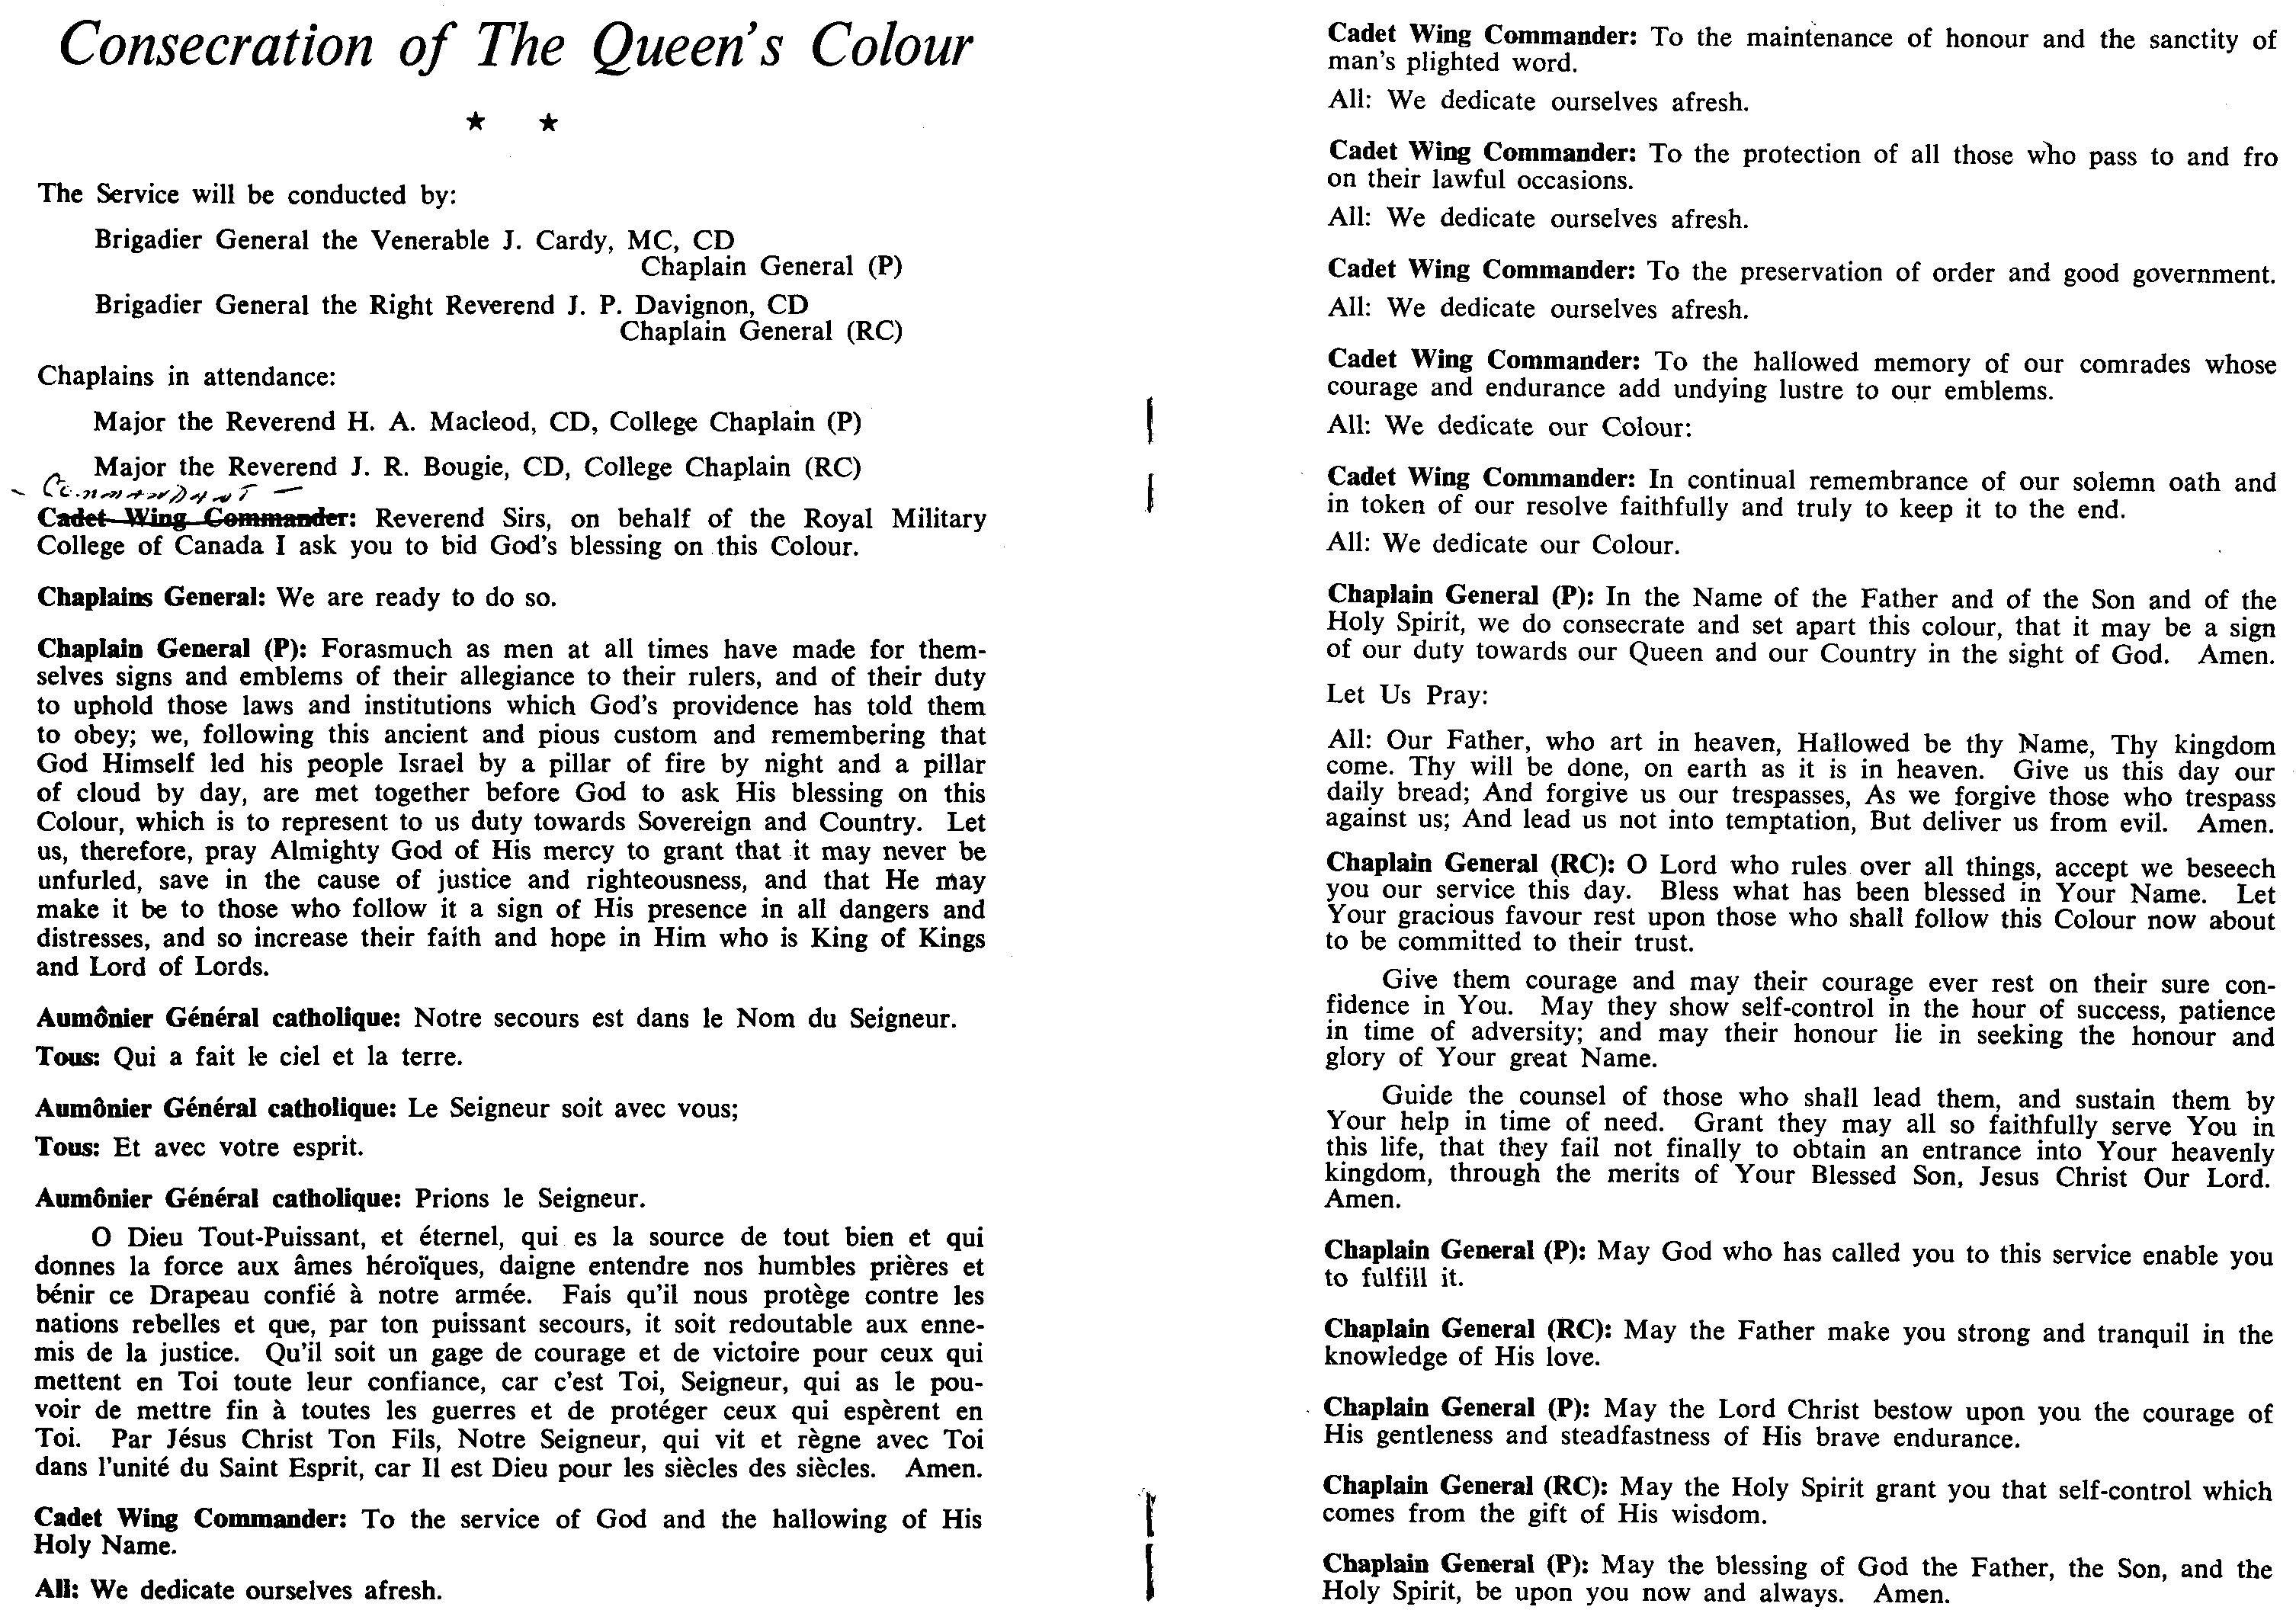 17_RMC-Presentation of Queens Colour-30May 1969-P11-12